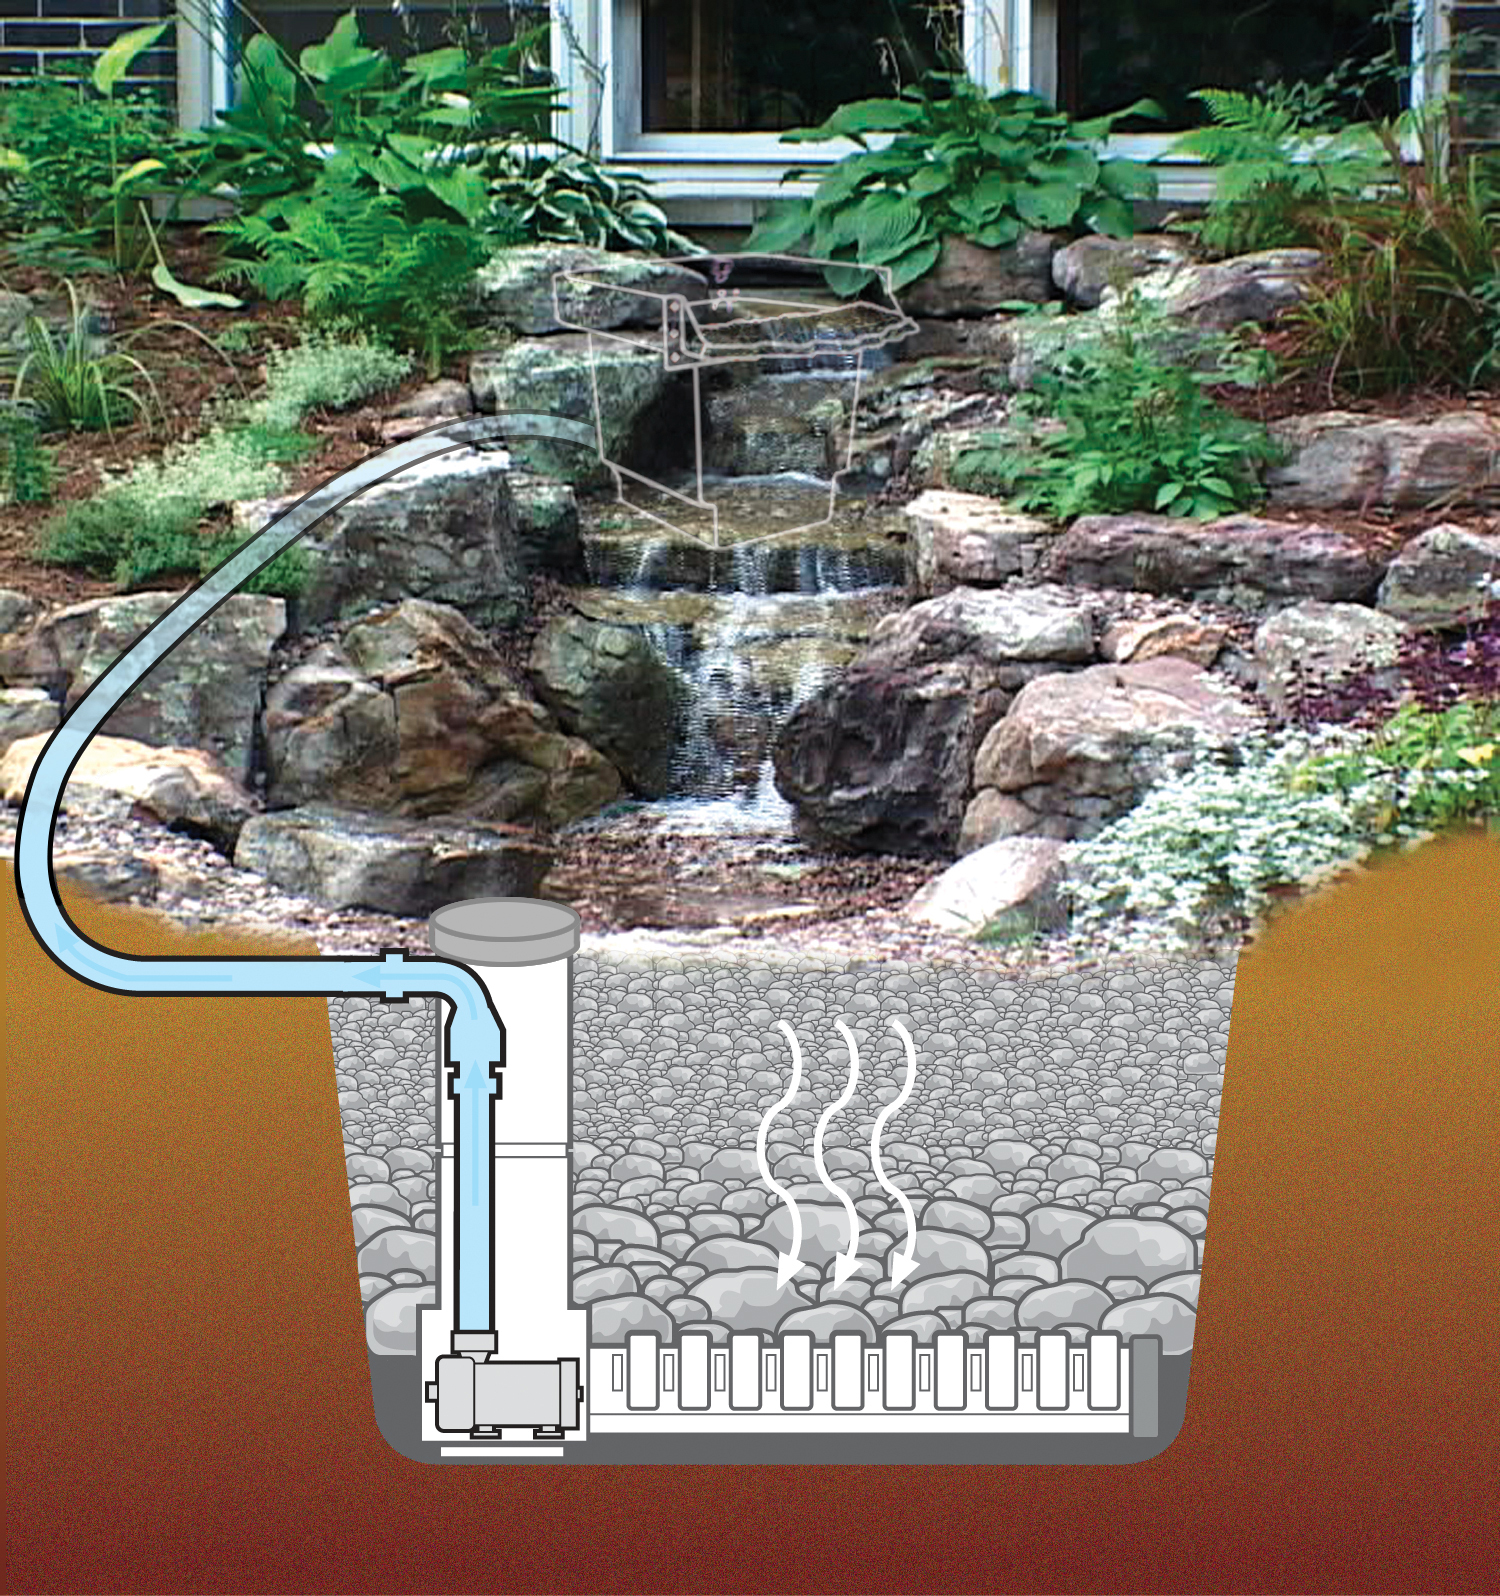 Aquascape designs pondless waterfall garden housecalls for Garden design kits